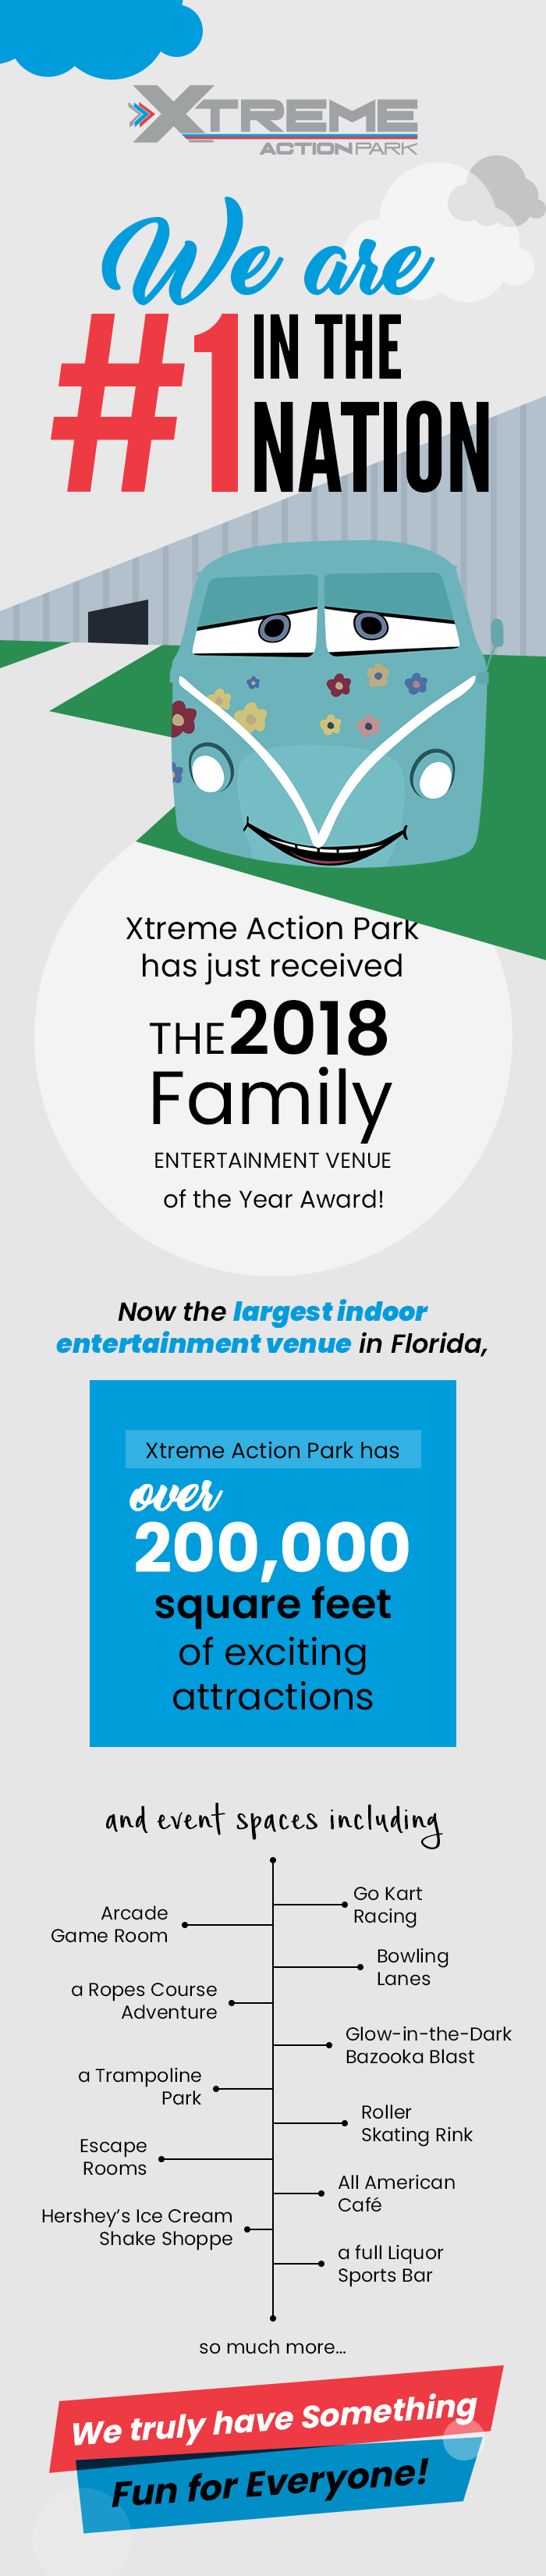 Xtreme Action Park – #1 Family Entertainment Complex in Fort Lauderdale